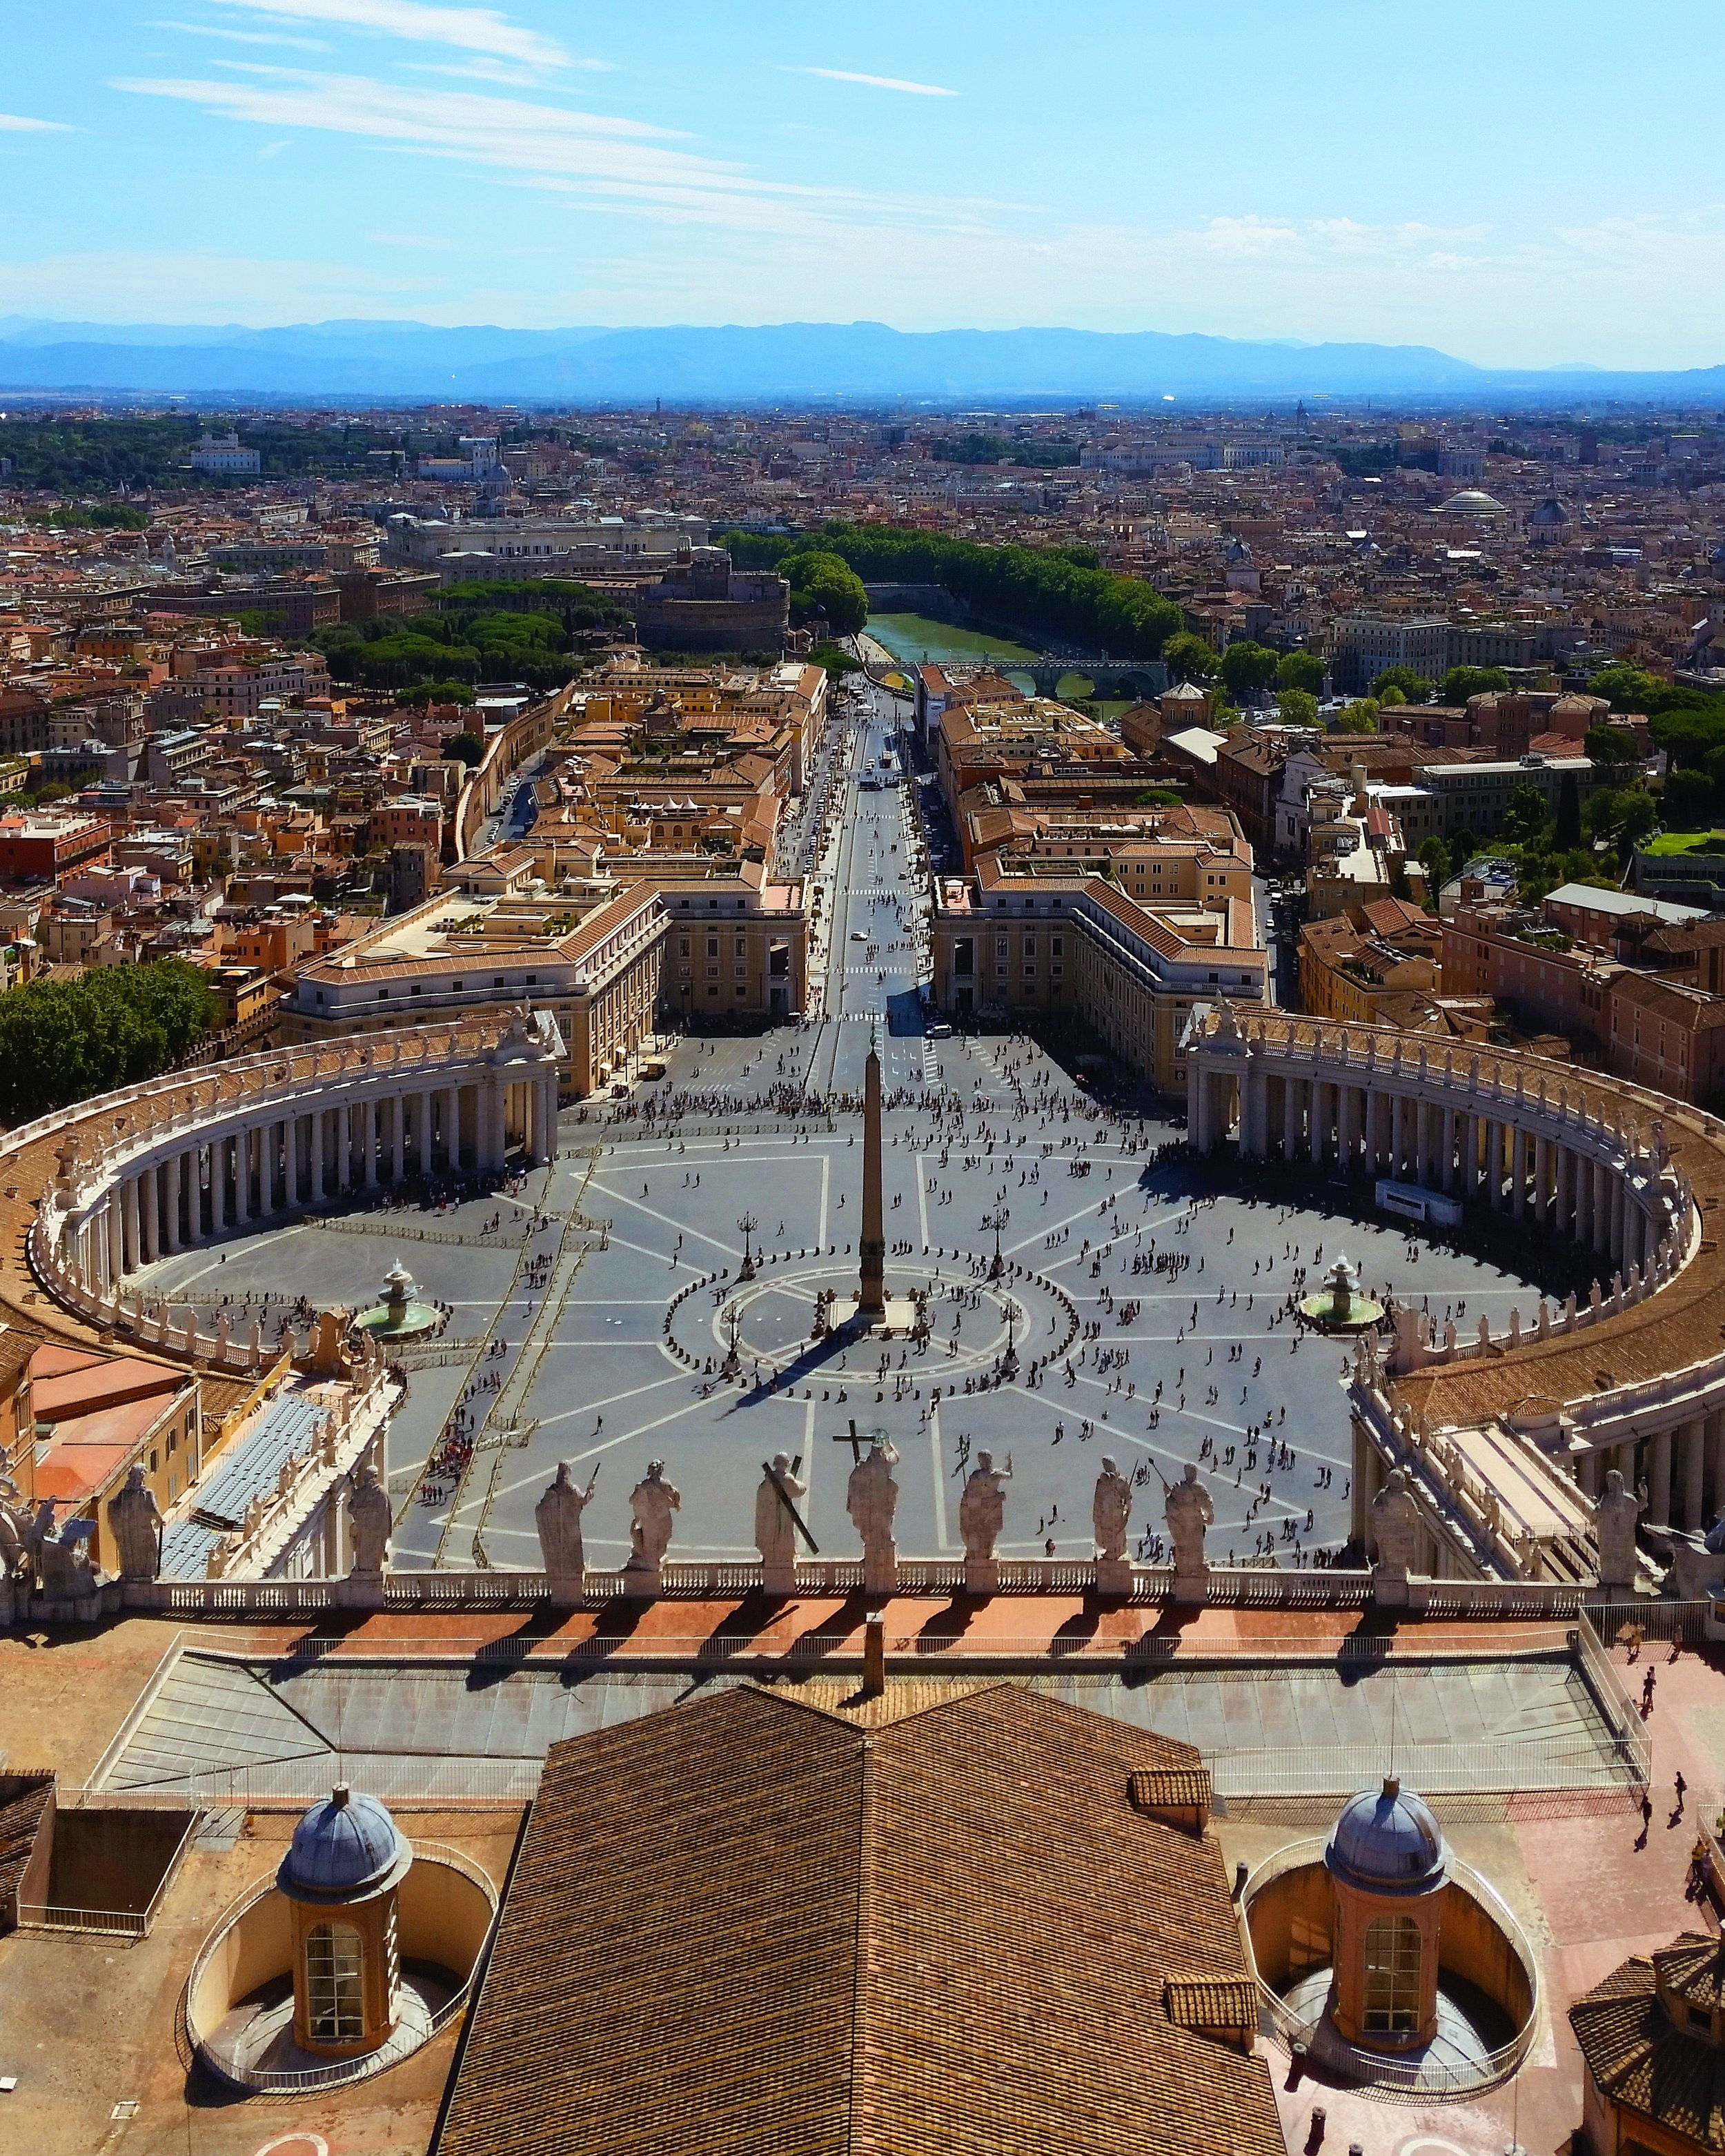 View of St. Peter's Square from the Dome